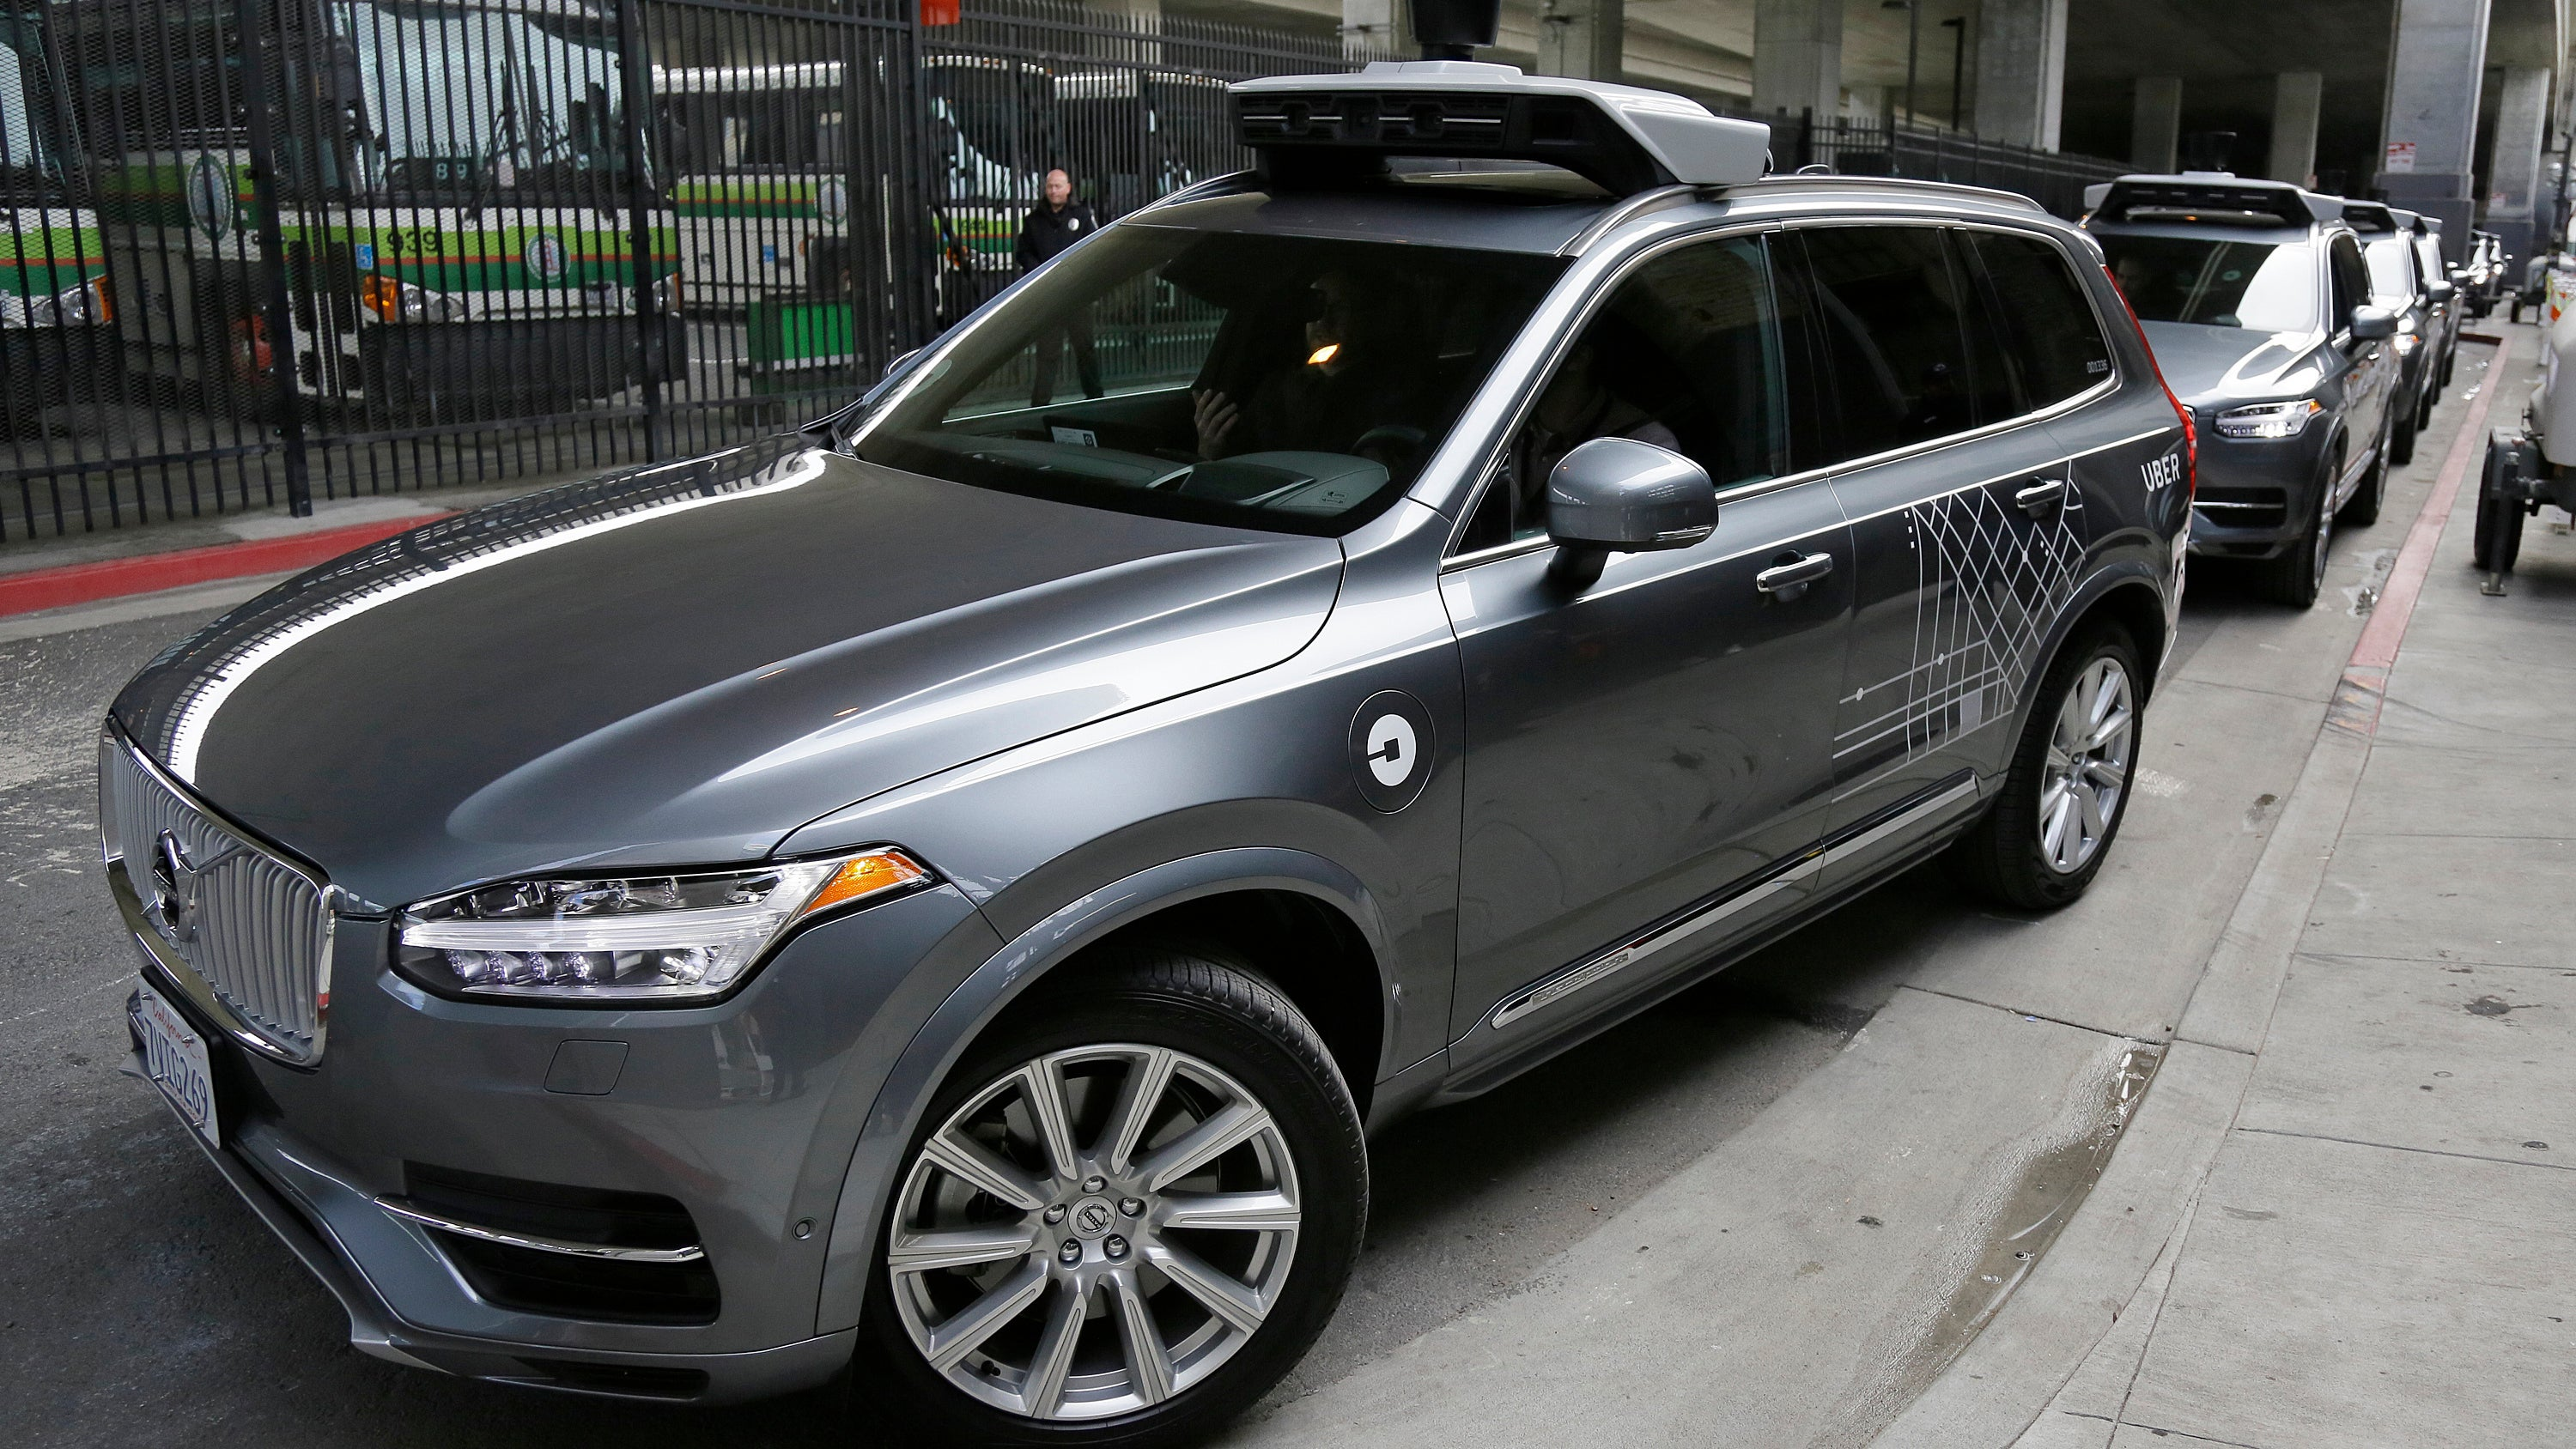 Uber Self-Driving Car Struck And Killed Arizona Woman While In Autonomous Mode